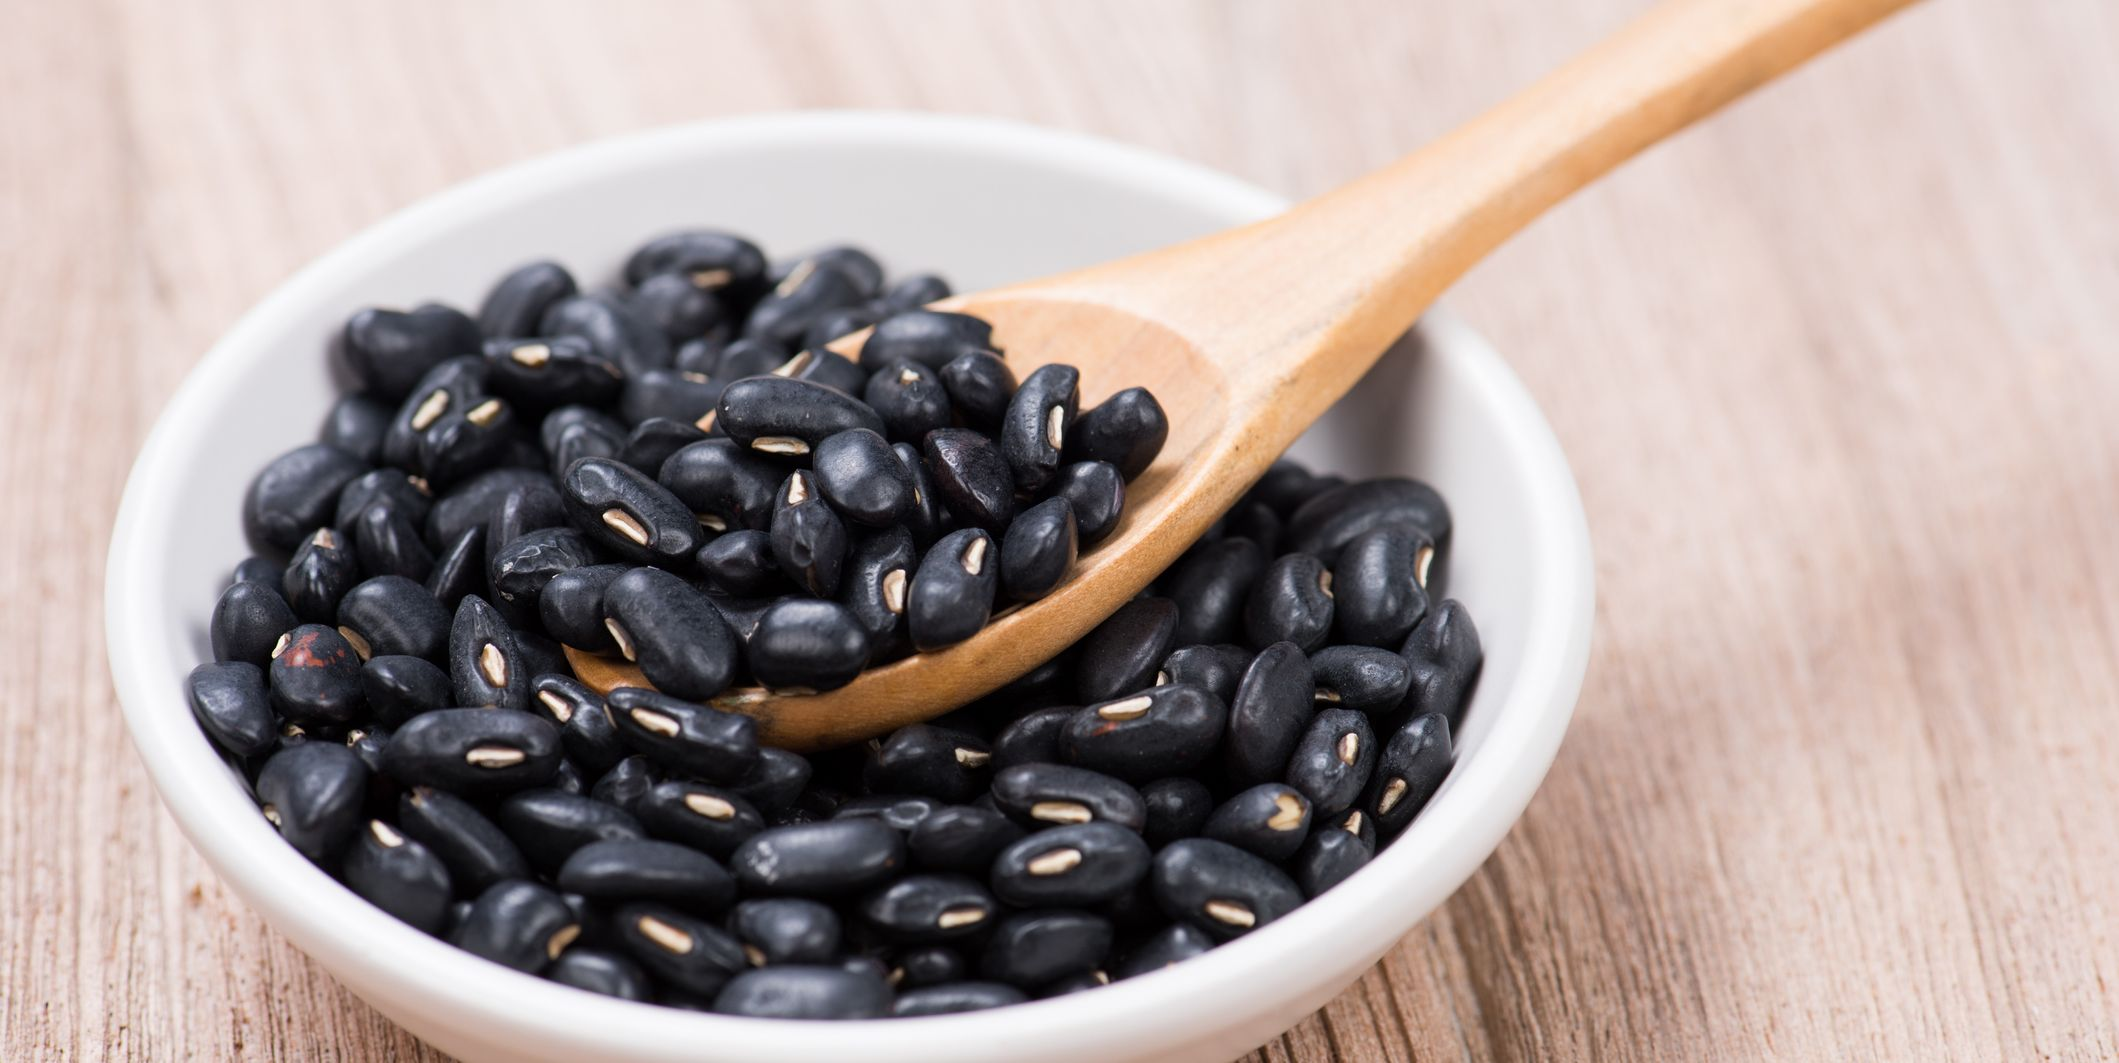 Black Beans in wooden spoon with seramic bowl